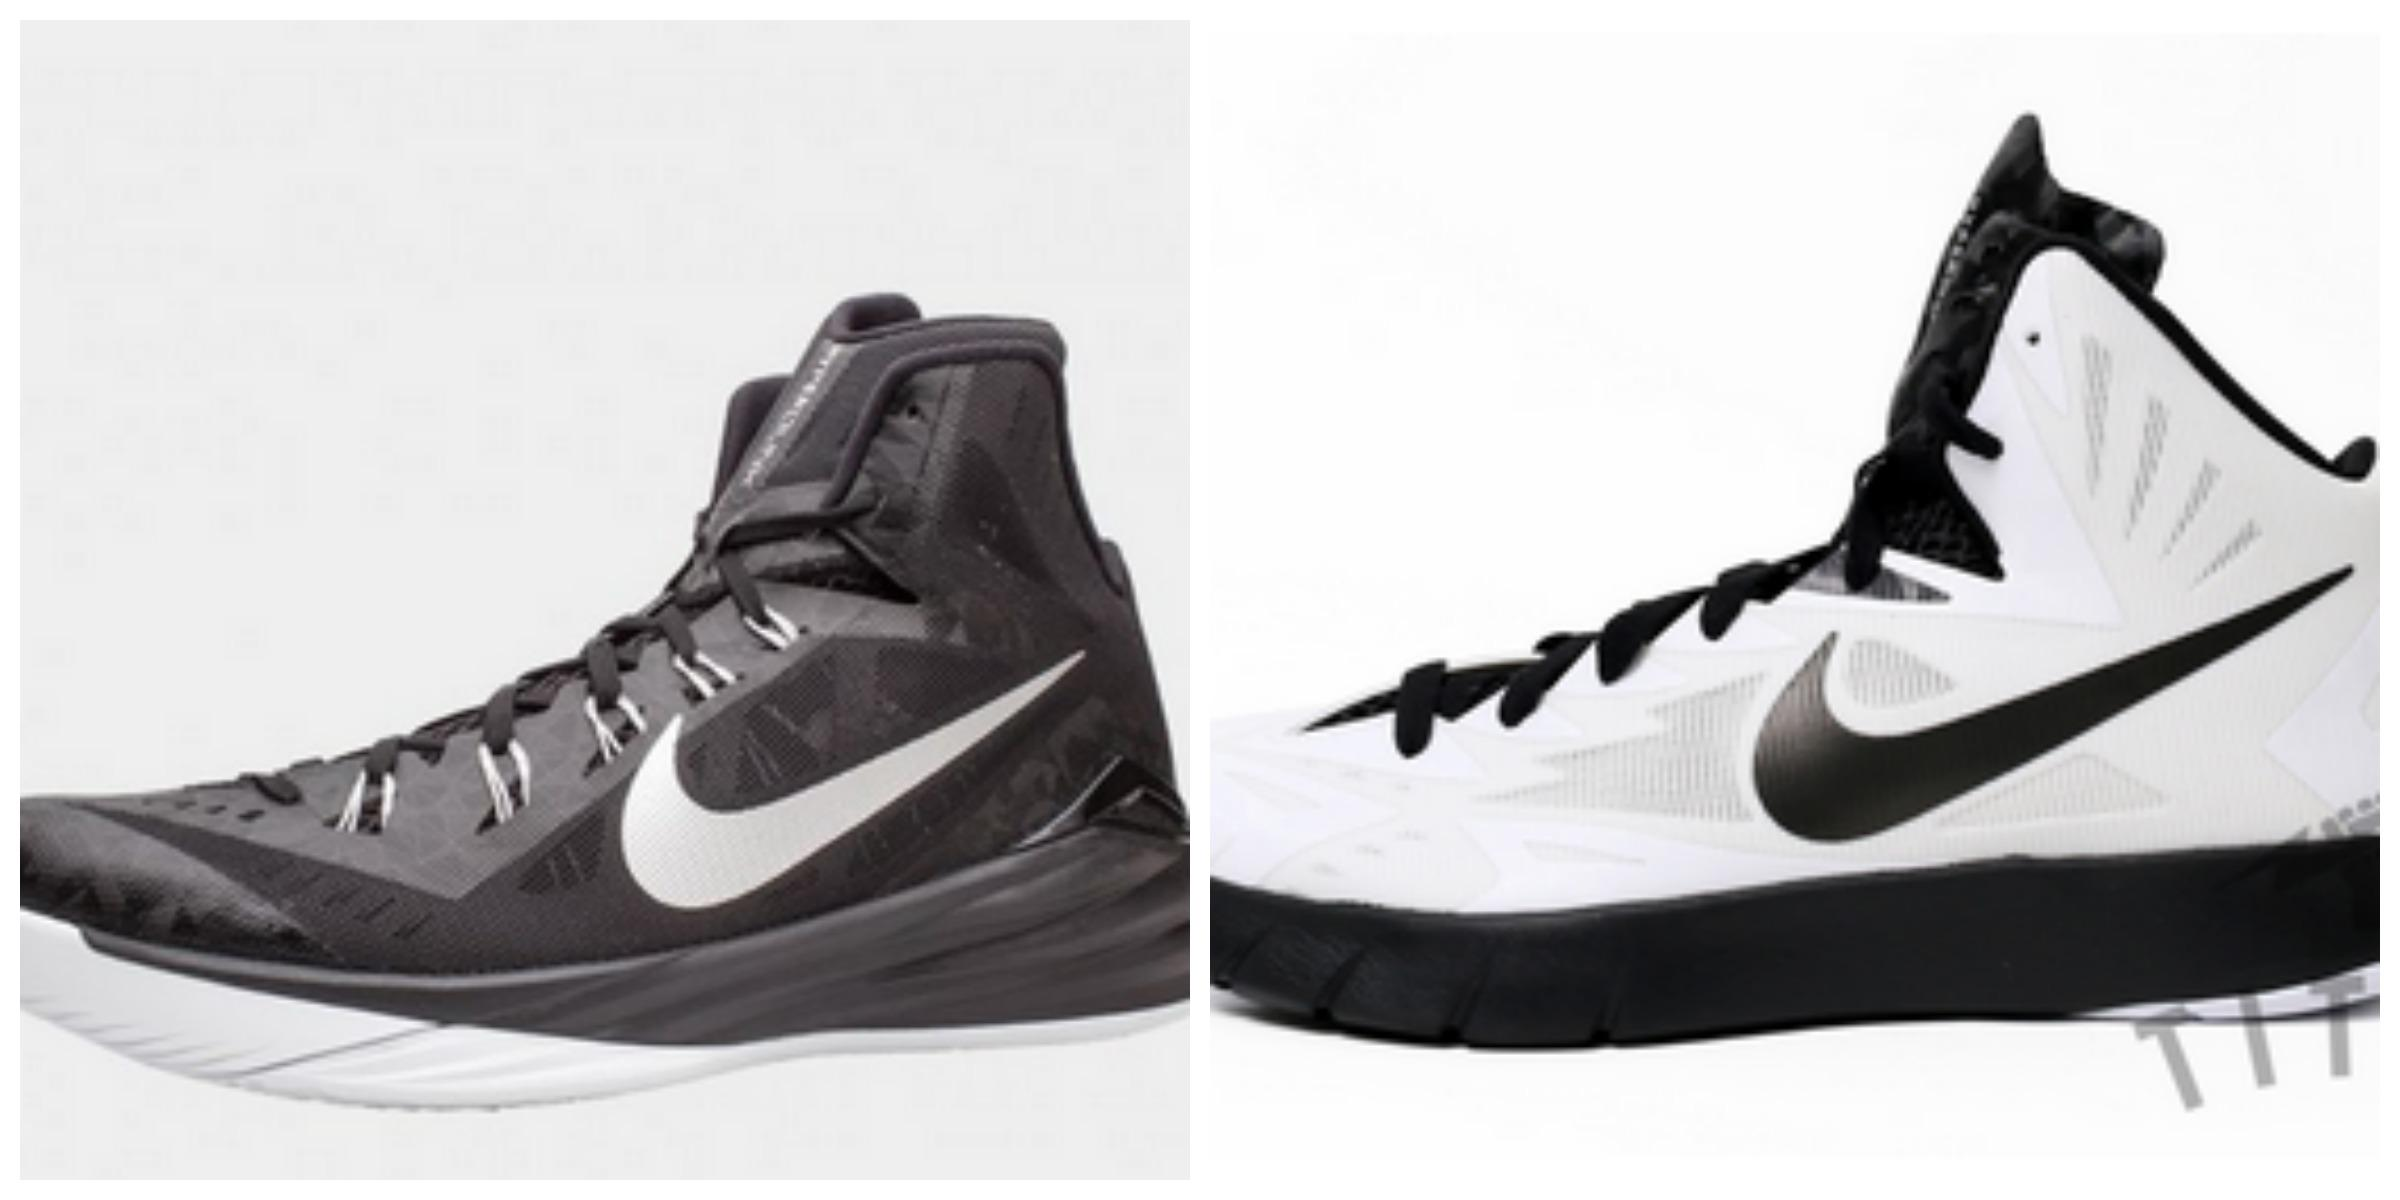 Picture to the left are the 2014-2015 girls basketball team shoe. They are